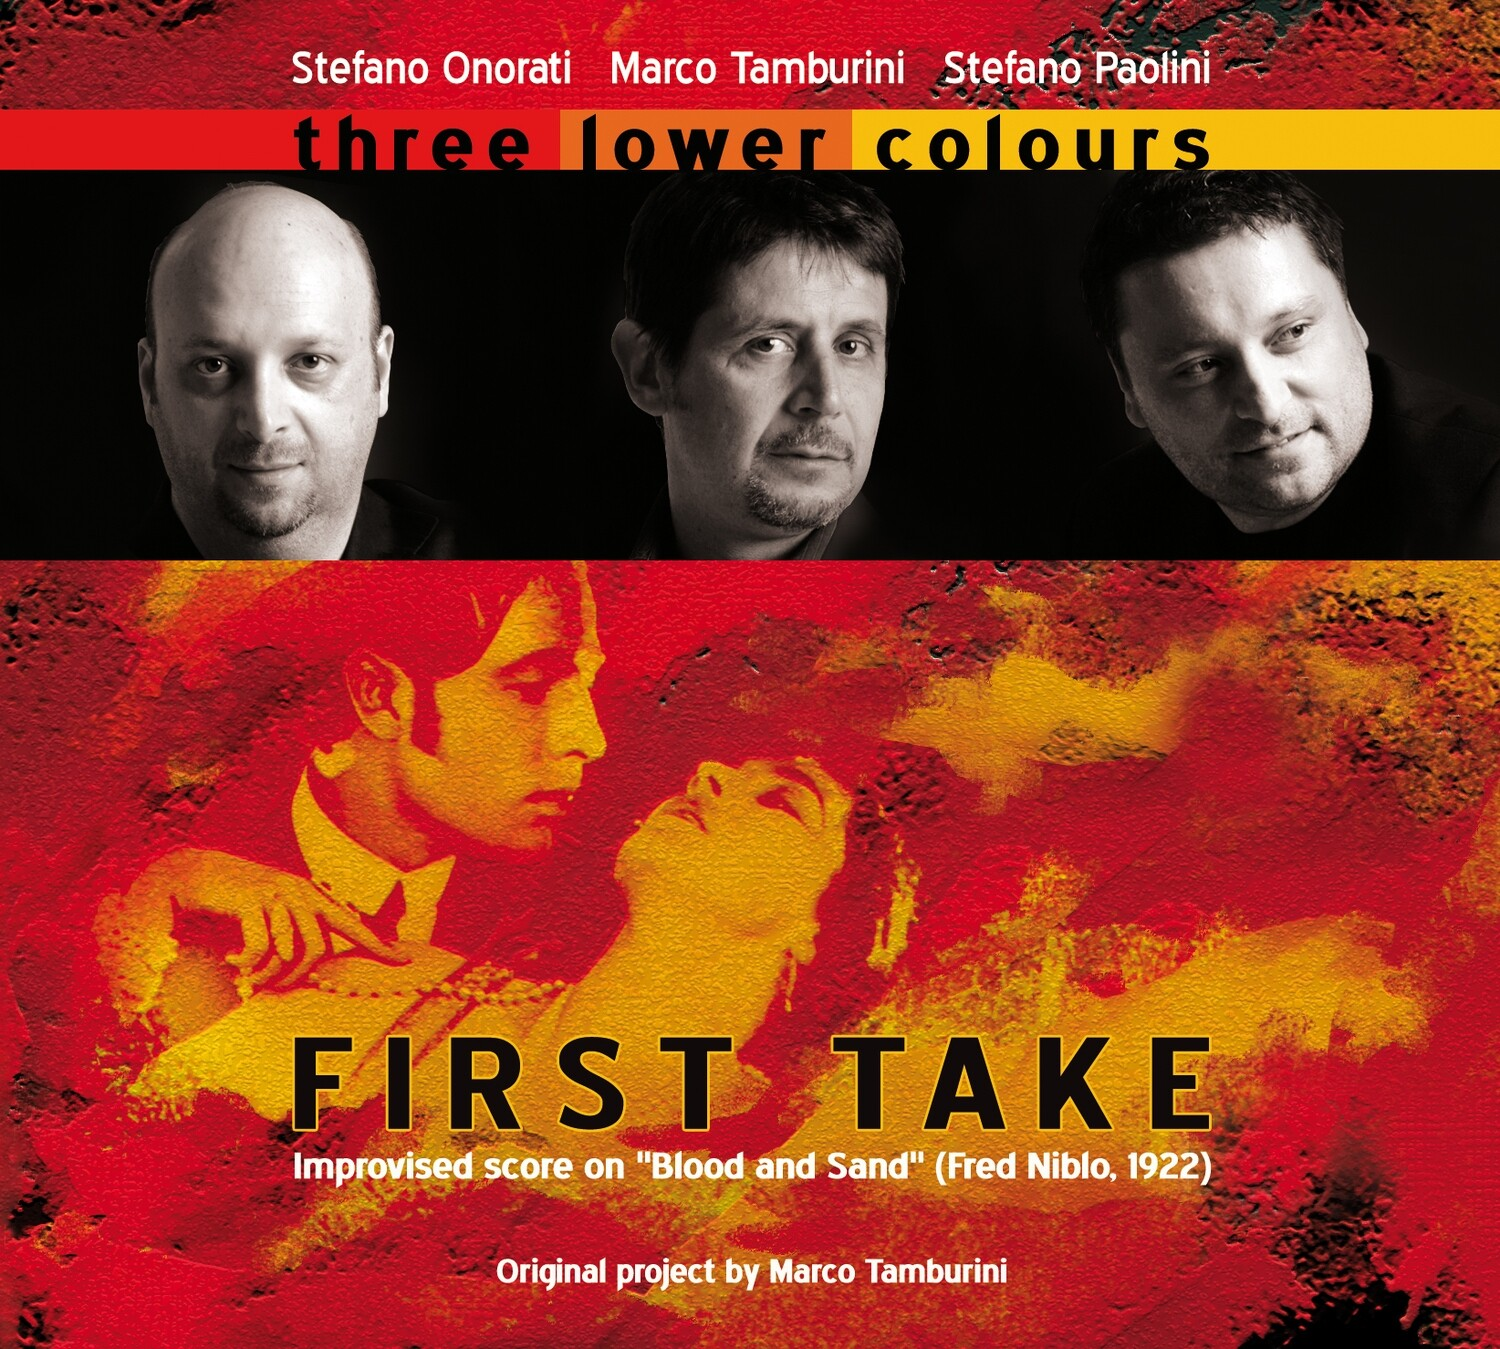 """MARCO TAMBURINI & THREE LOWER COLOURS  «First take: Improvised Score On """"Blood and Sand"""" (Fred Niblo, 1922)»"""